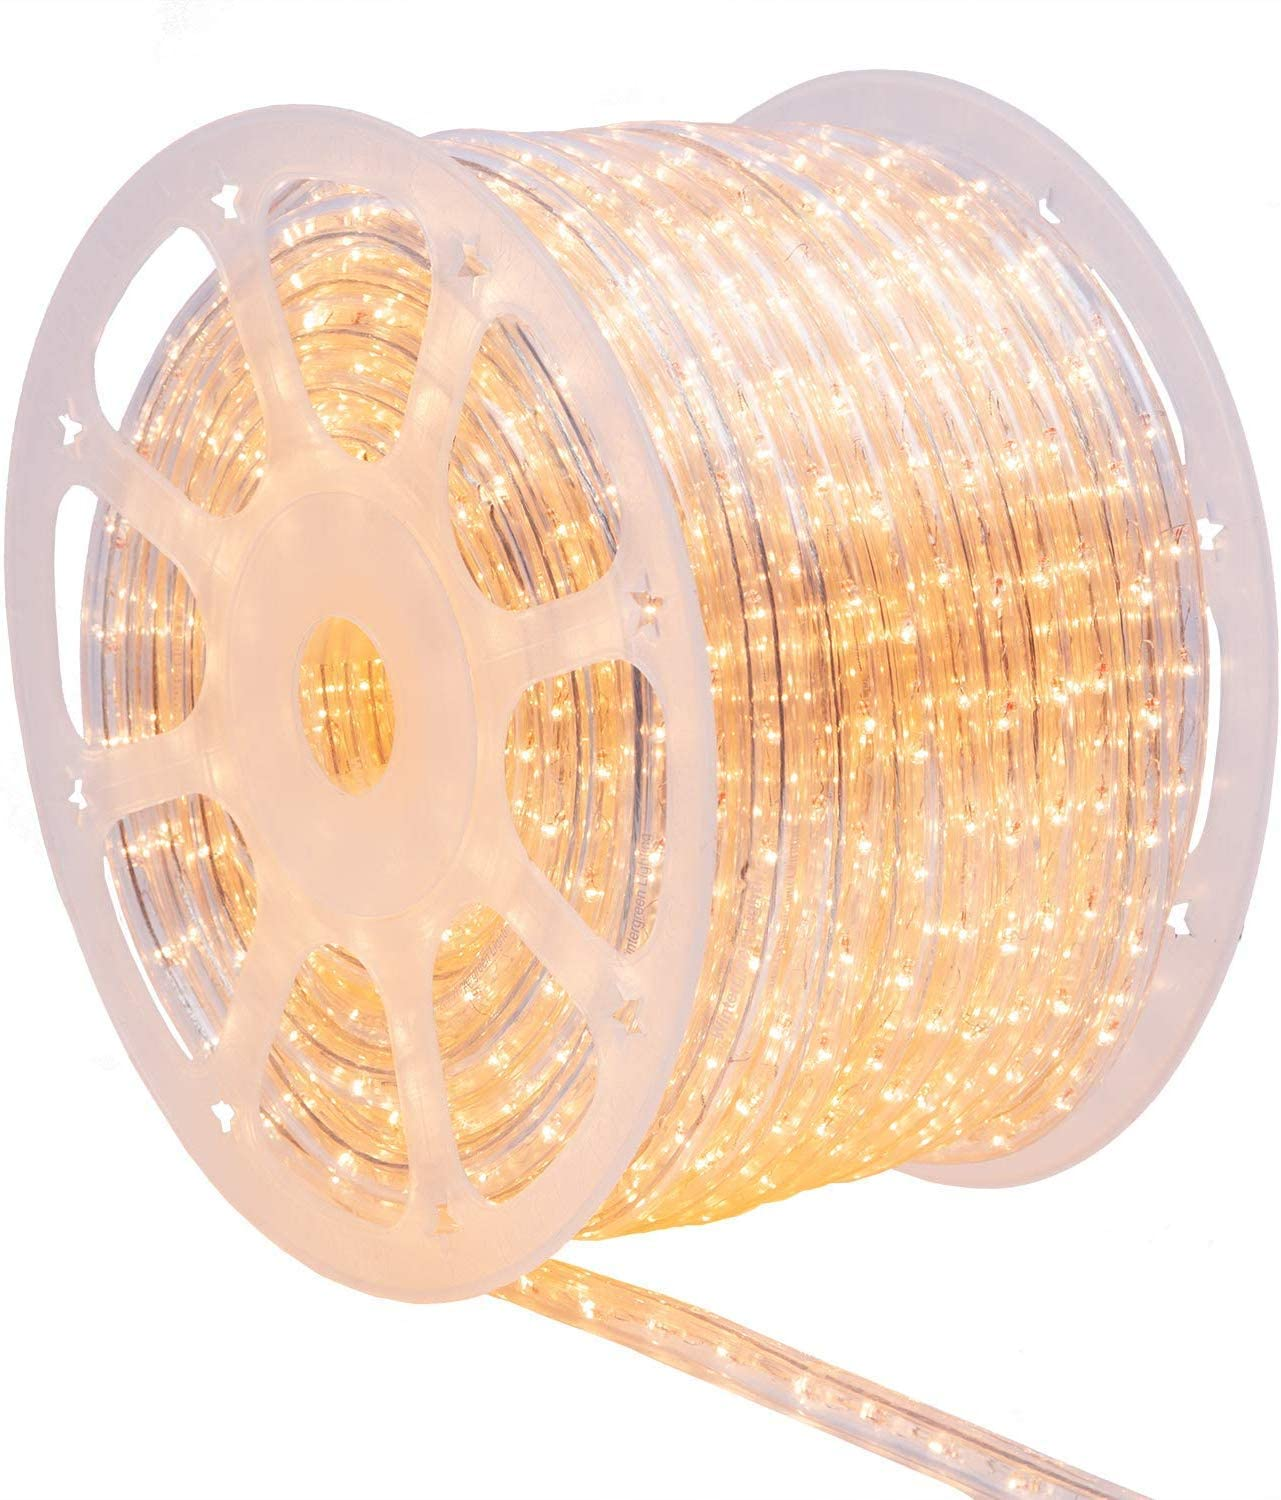 Wintergreen Lighting 150' Clear Incandescent Rope Light Kit – Includes Power Cord, 120V, ½ Inch, 2-Wire (150' Spool, Clear)